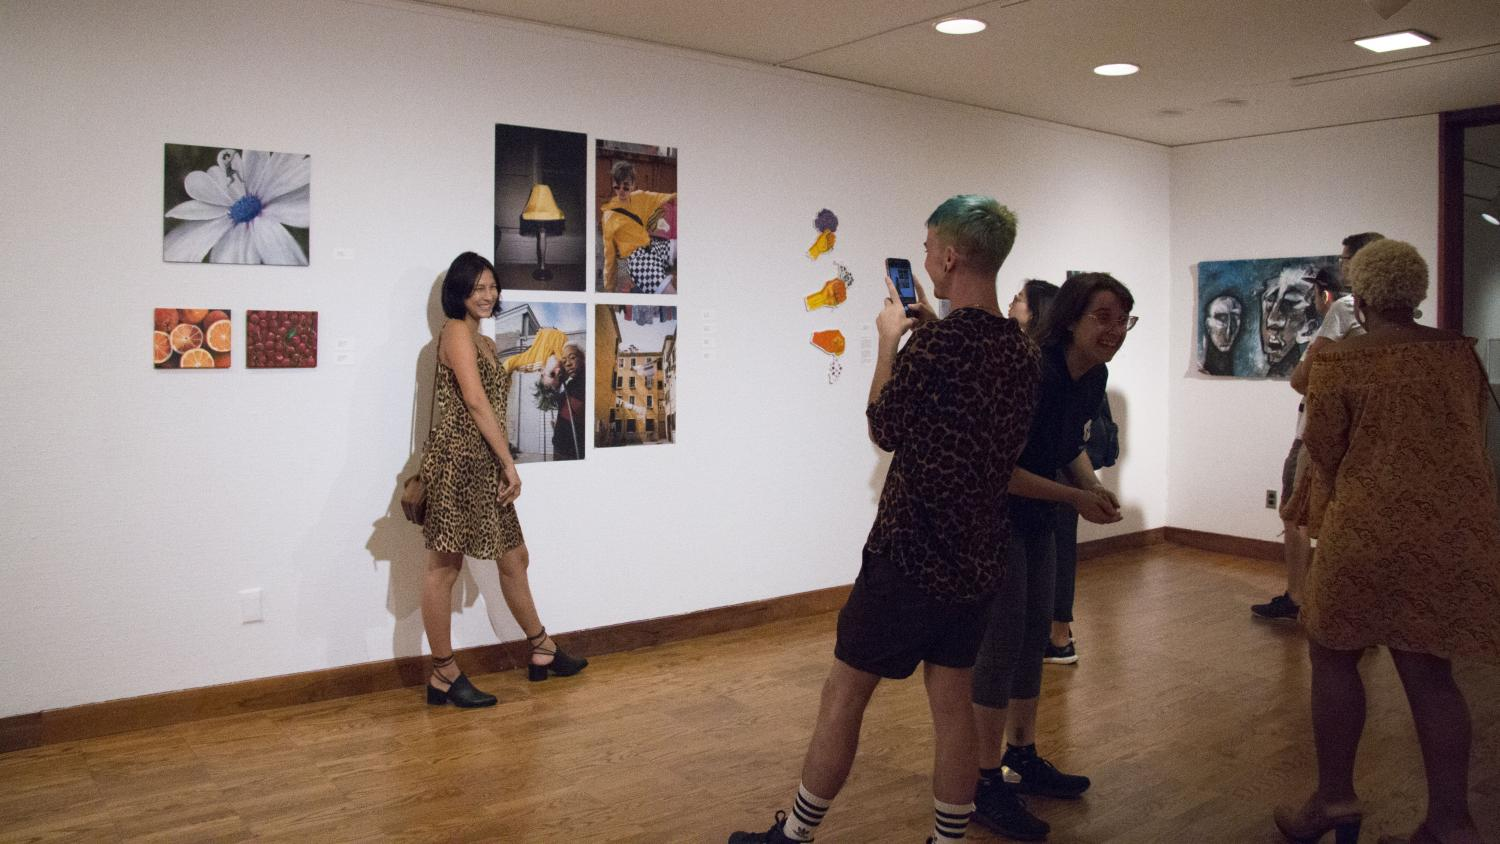 Student Pop-up Art Exhibition at KAM Fest Opening Night Celebration, Krannert Art Museum, 2018. Photo by Julia Nucci Kelly